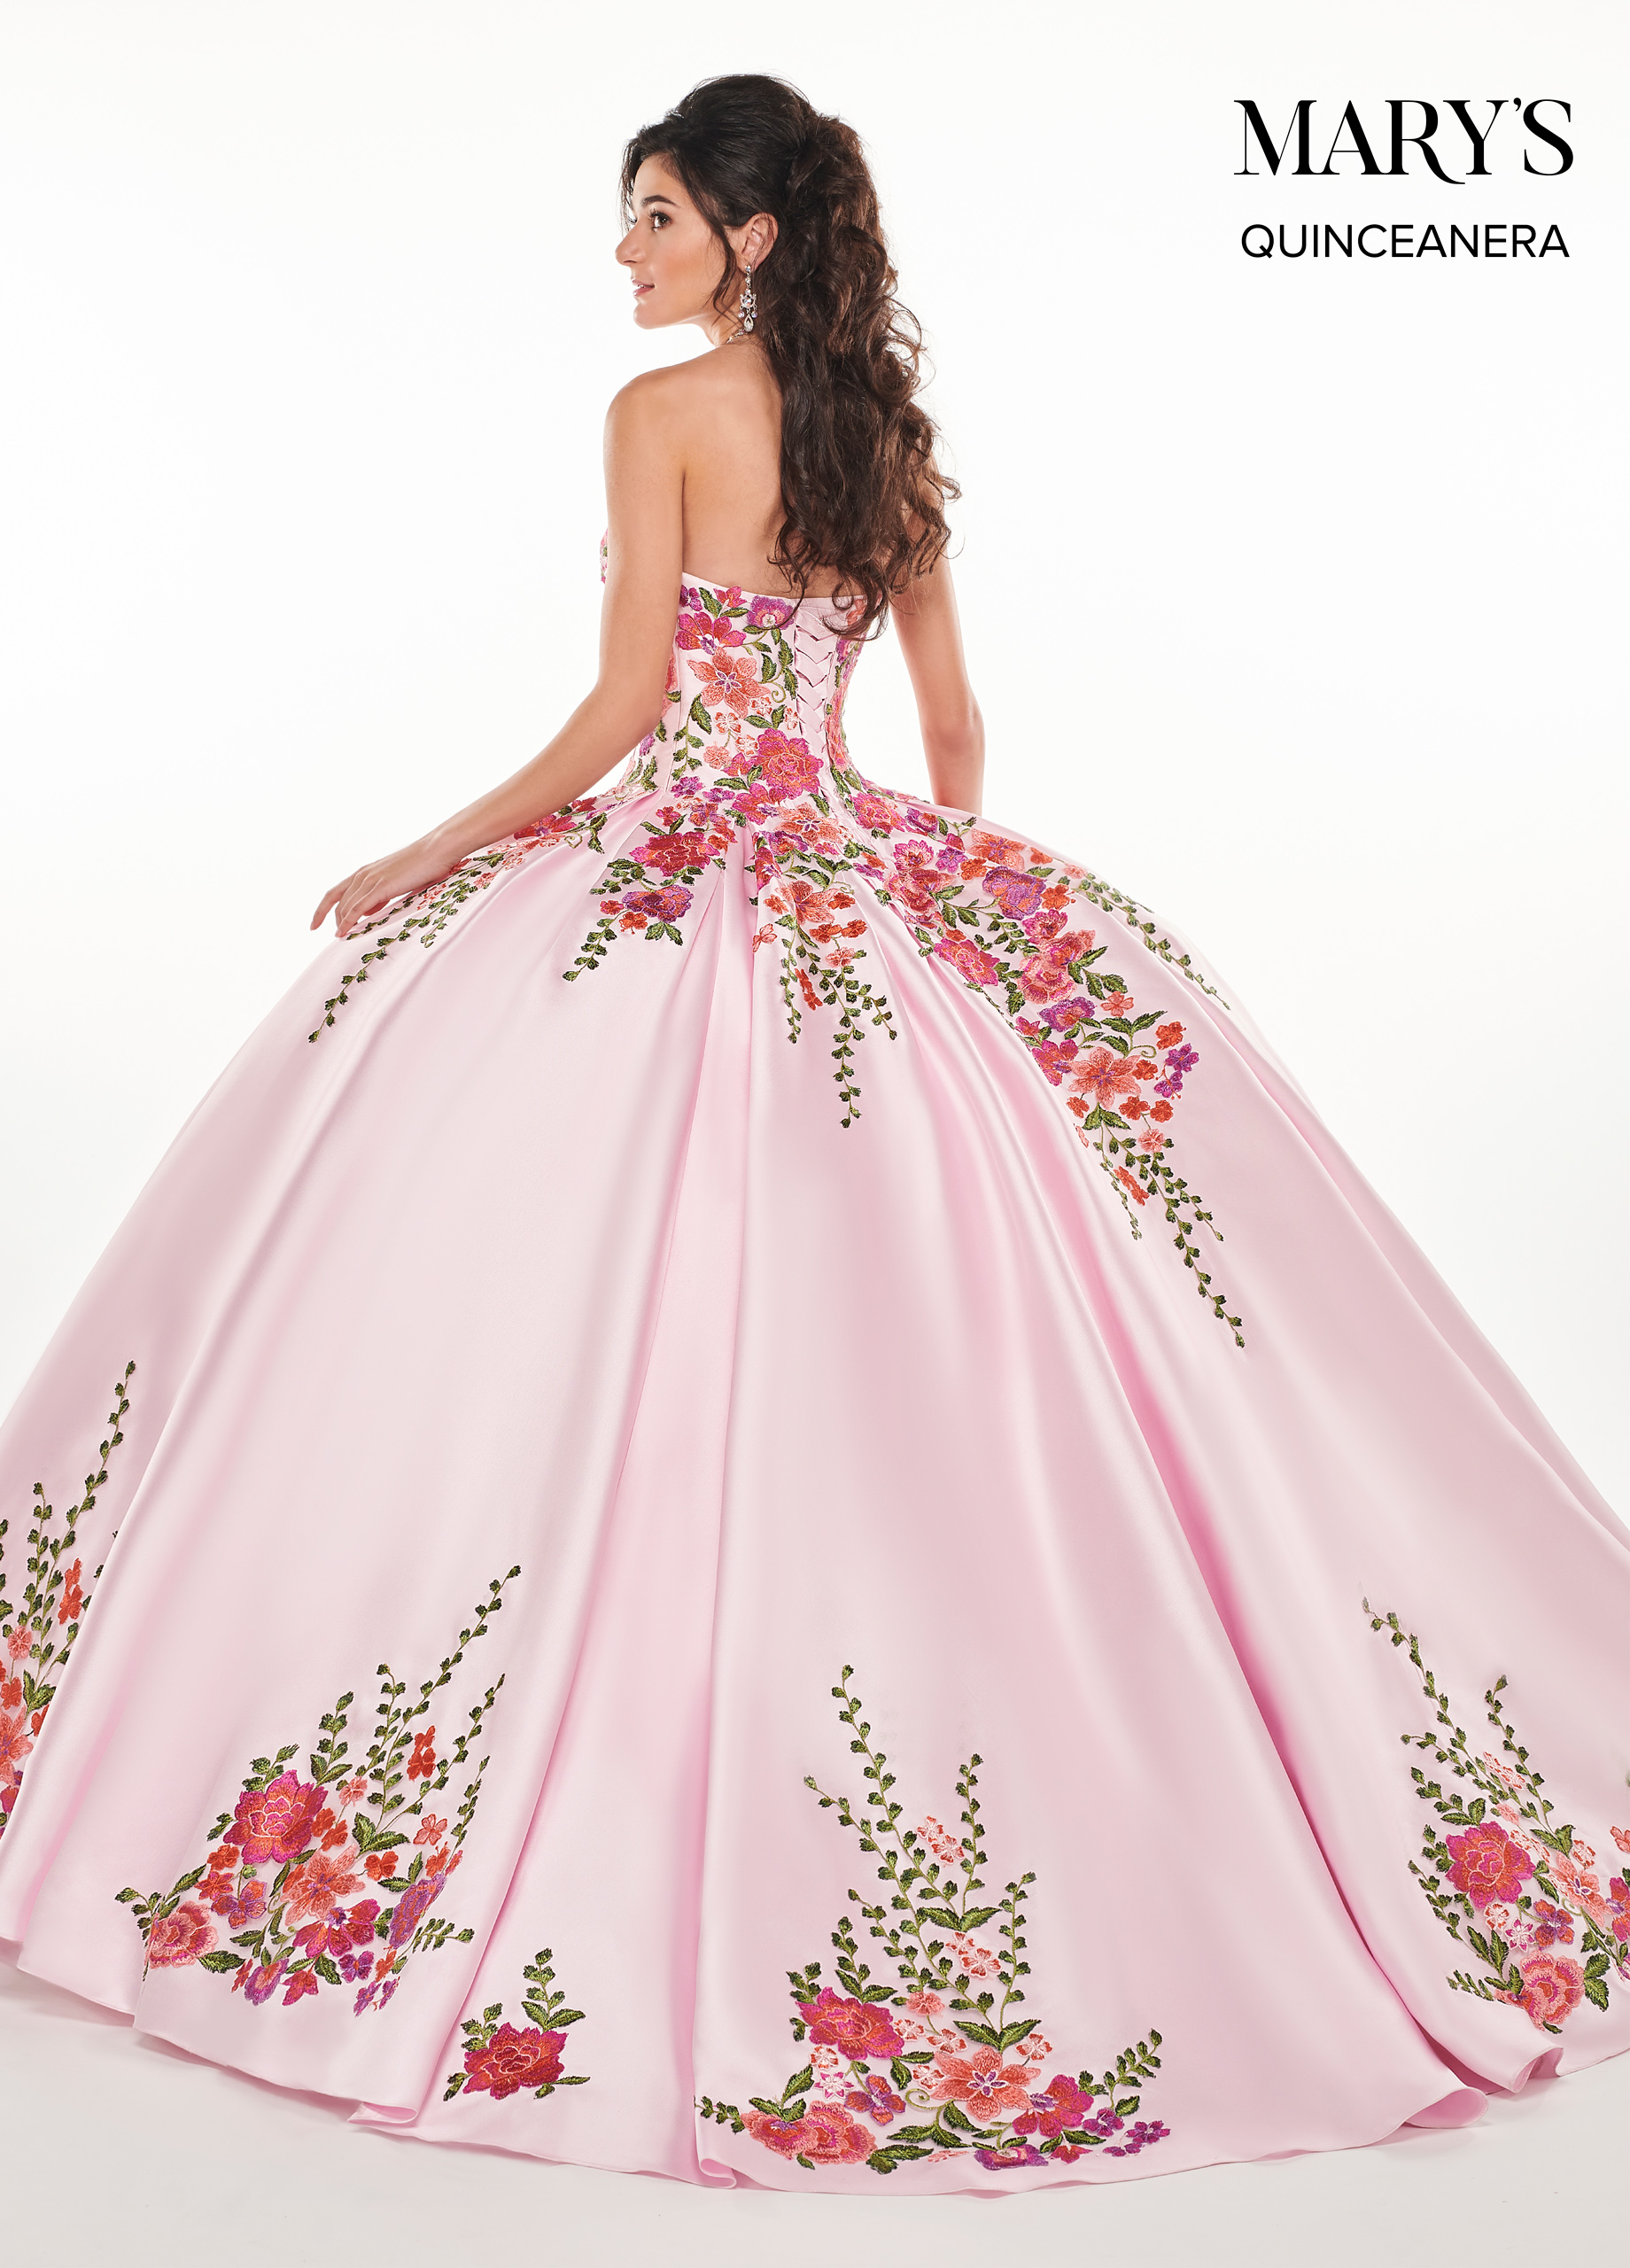 Marys Quinceanera Dresses | Mary's Quinceanera | Style - MQ2066